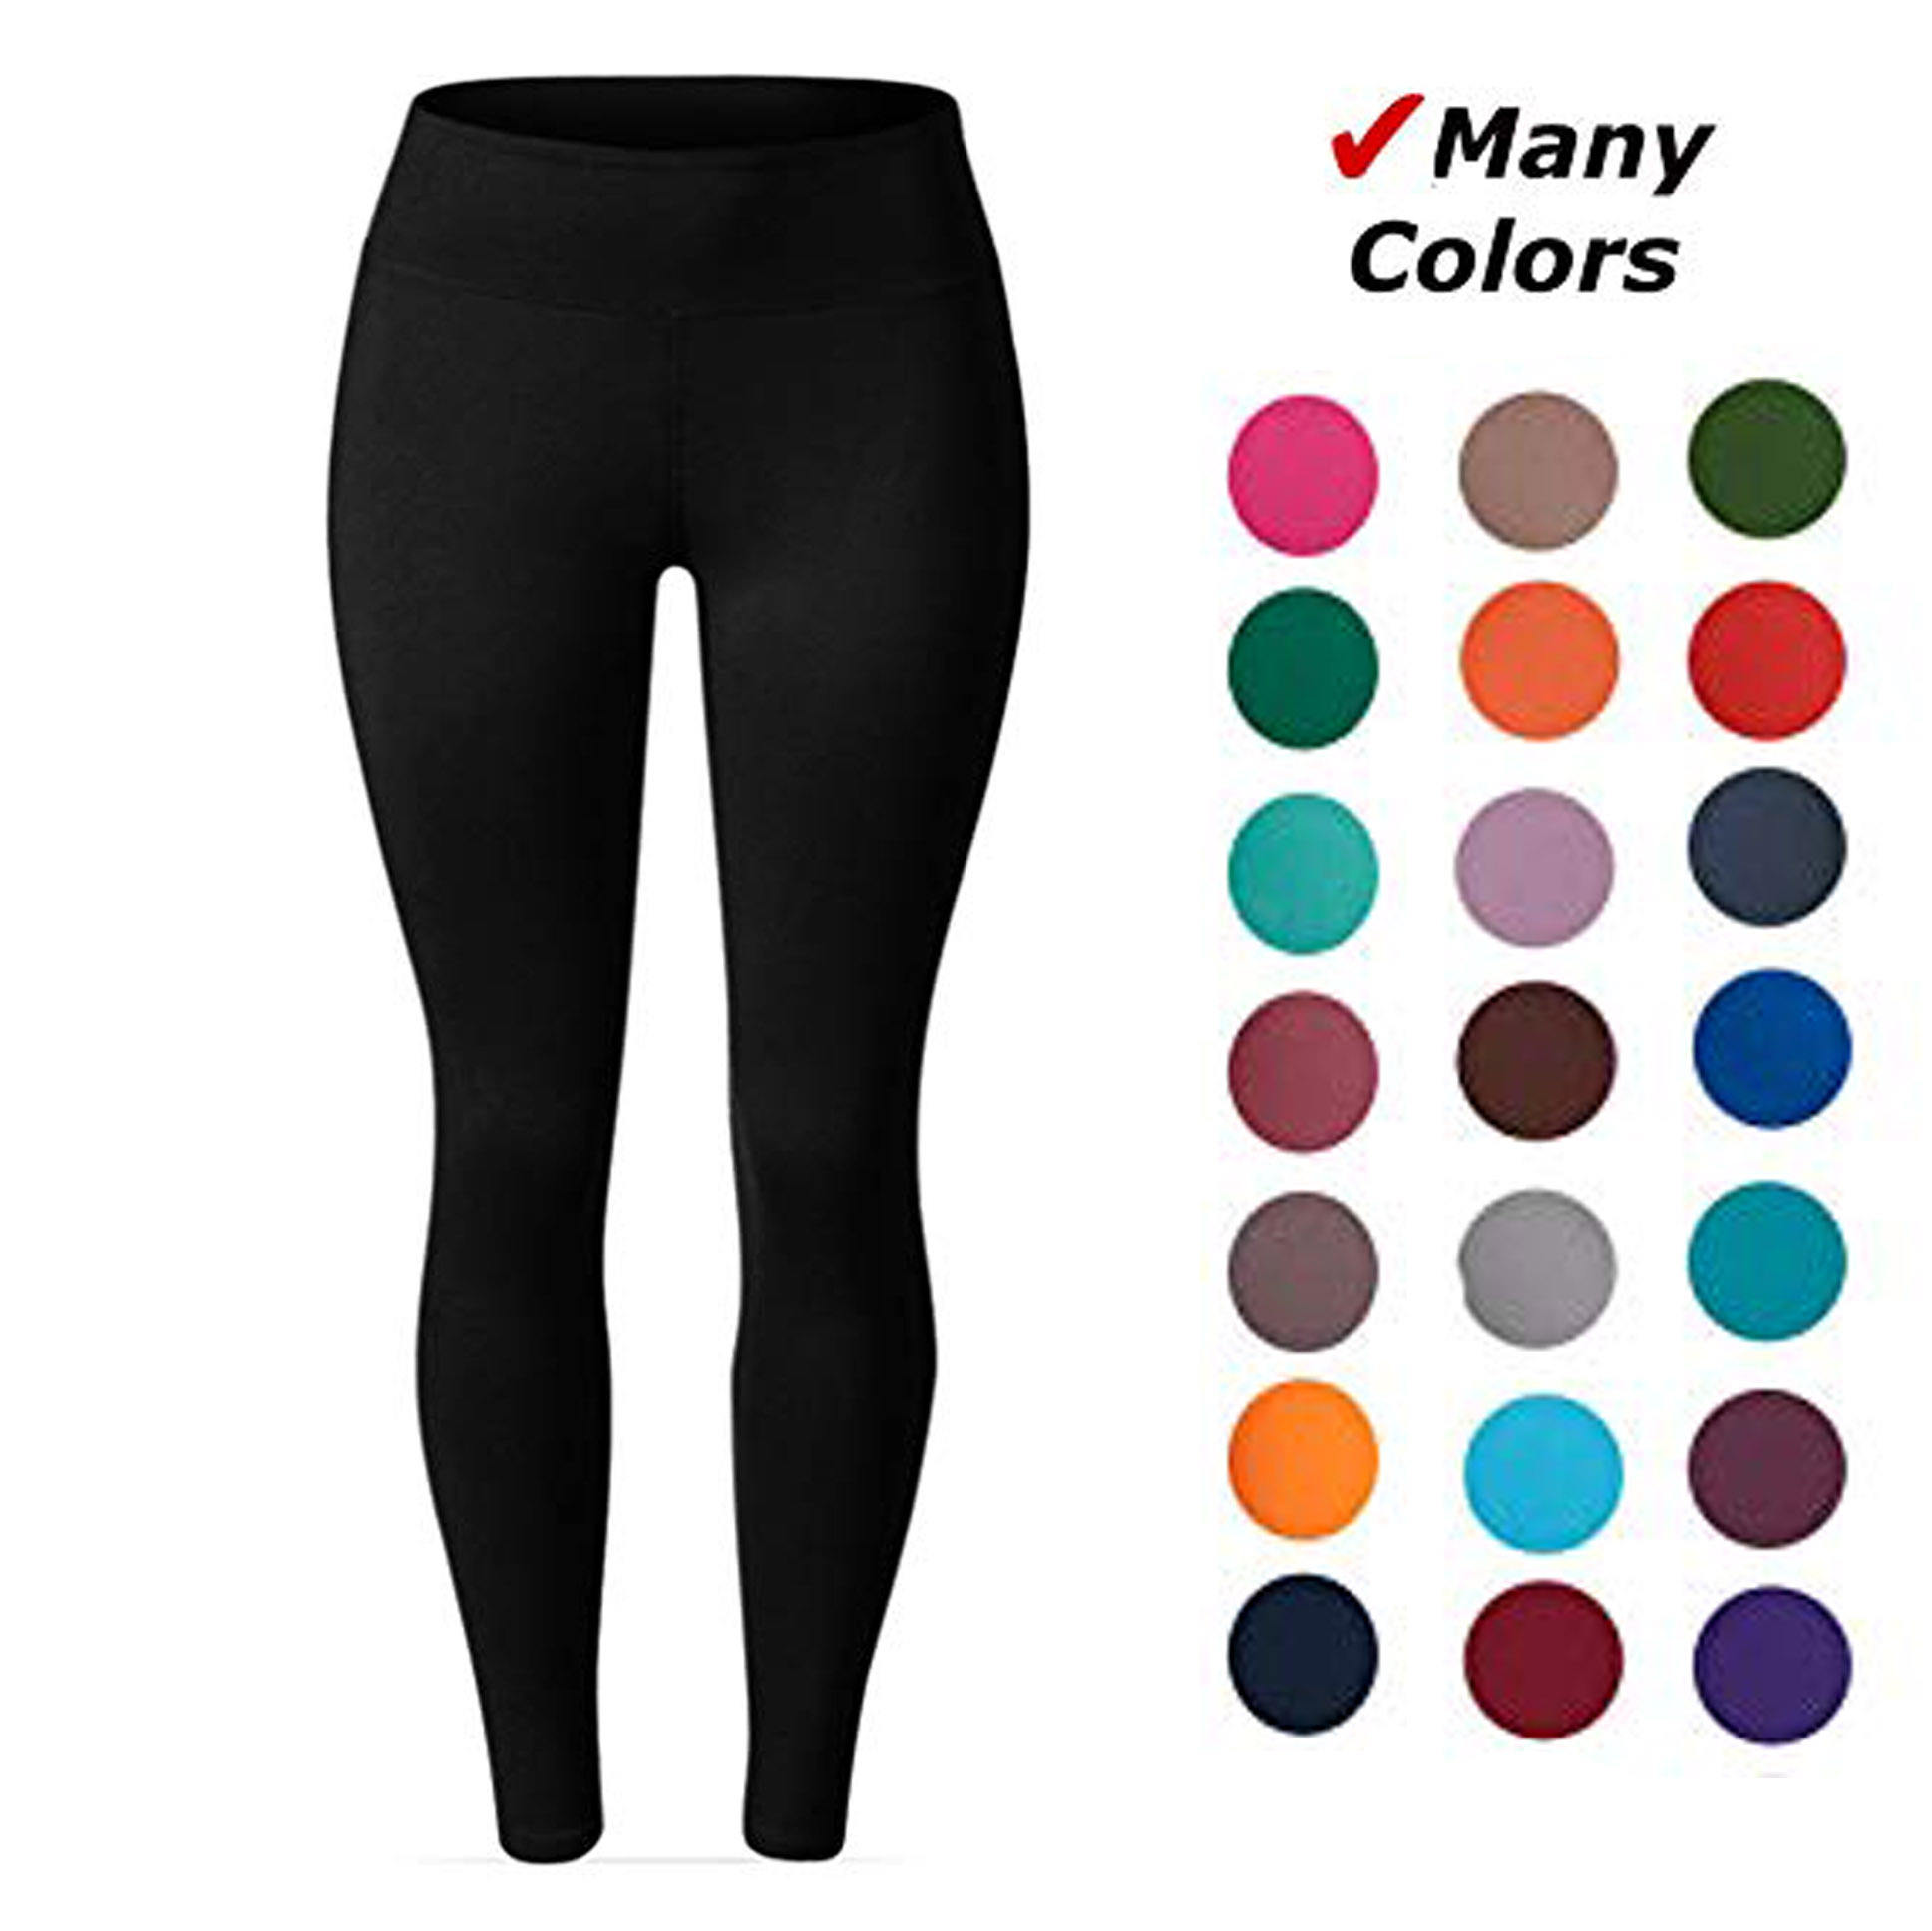 92% polyester 8% spandex yoga waist band buttery soft double brushed yiwu black solid color leggings for women